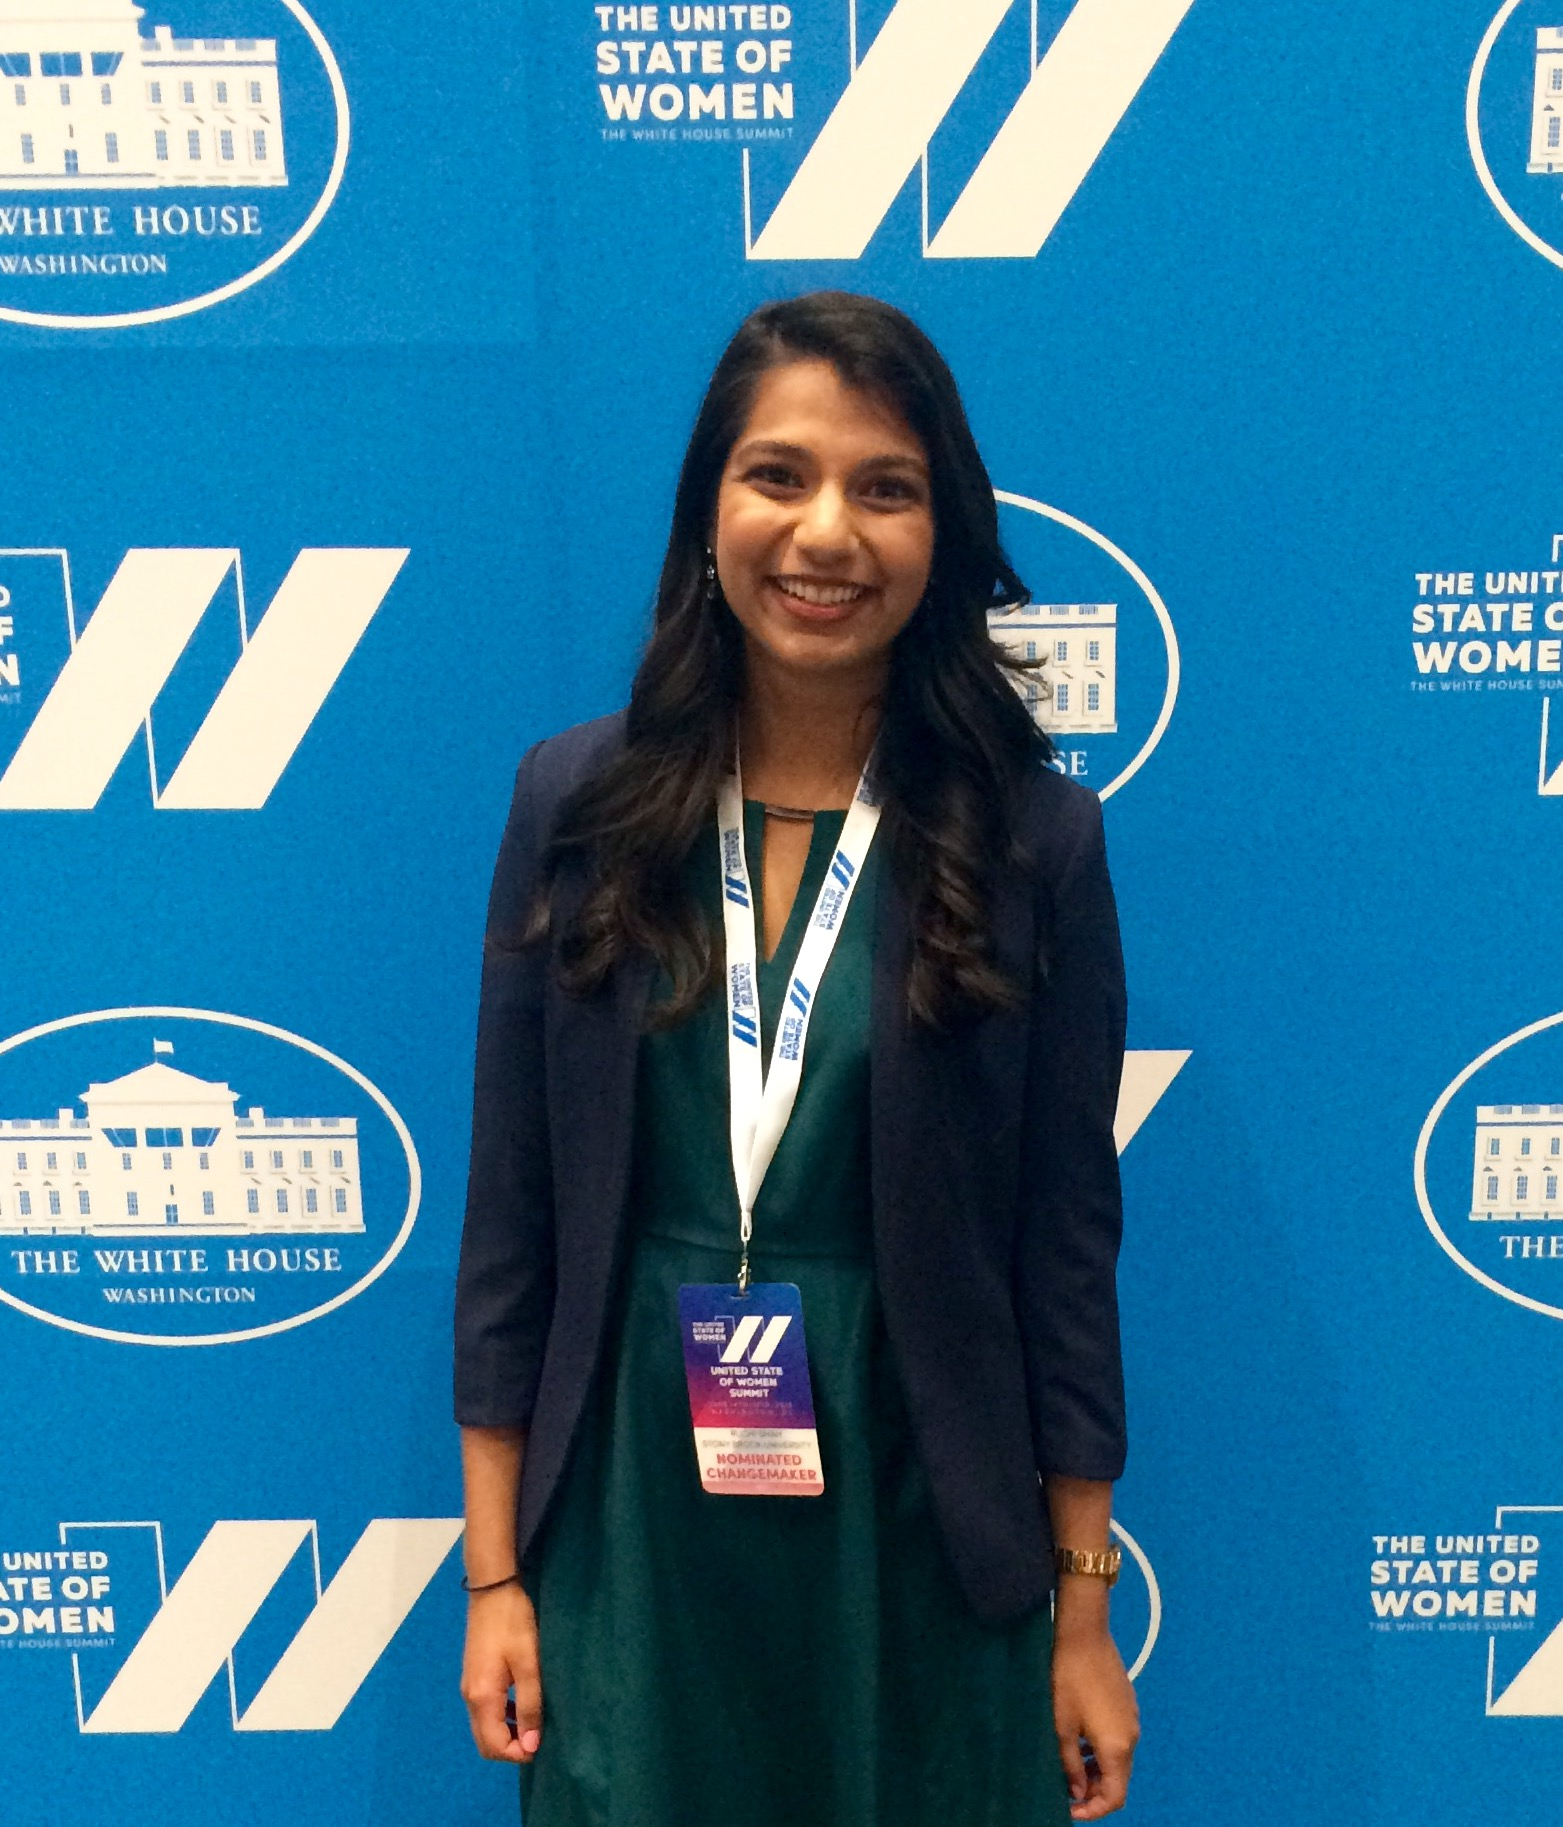 Ruchi Shah at the White House summit addressing gender equality.